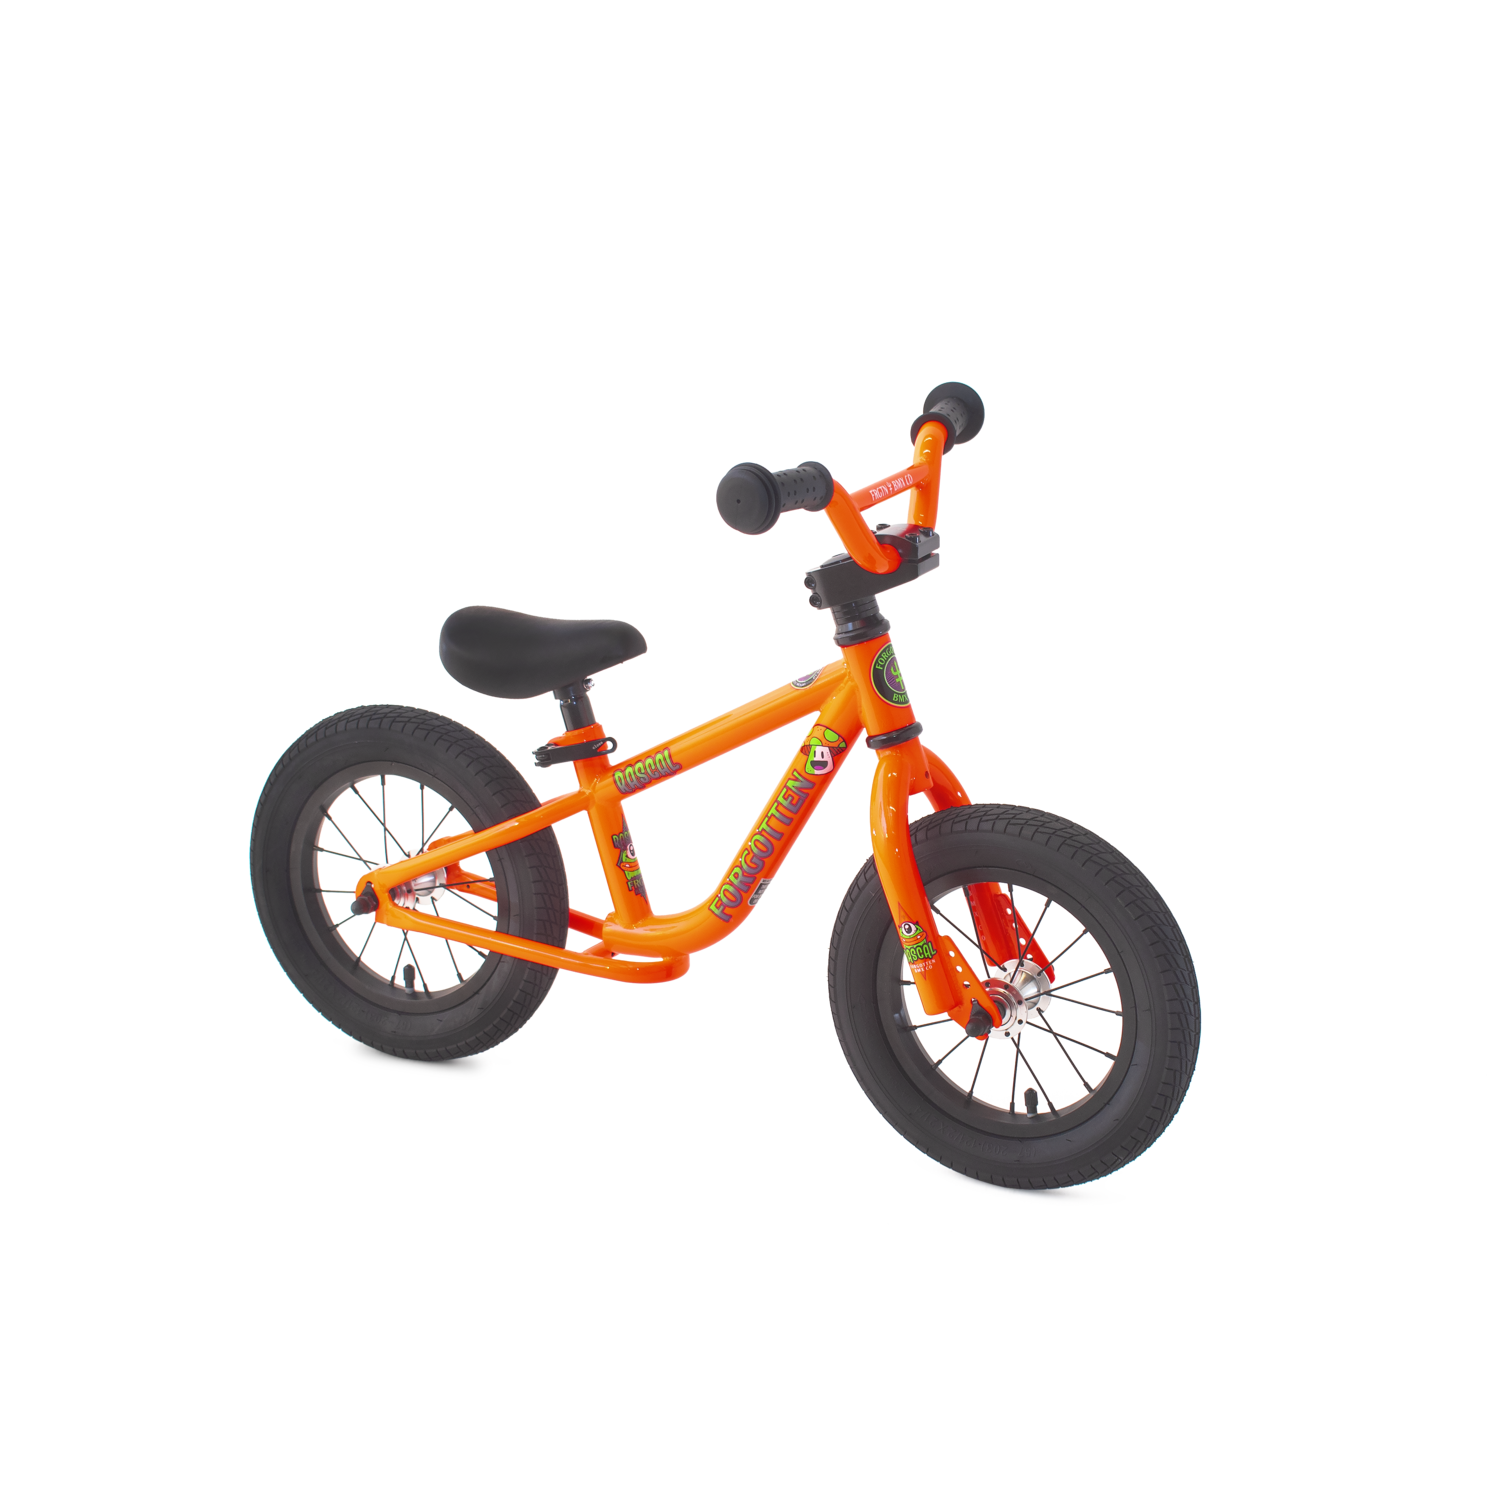 Rascal Balance bike - Orange - Forgotten BMX